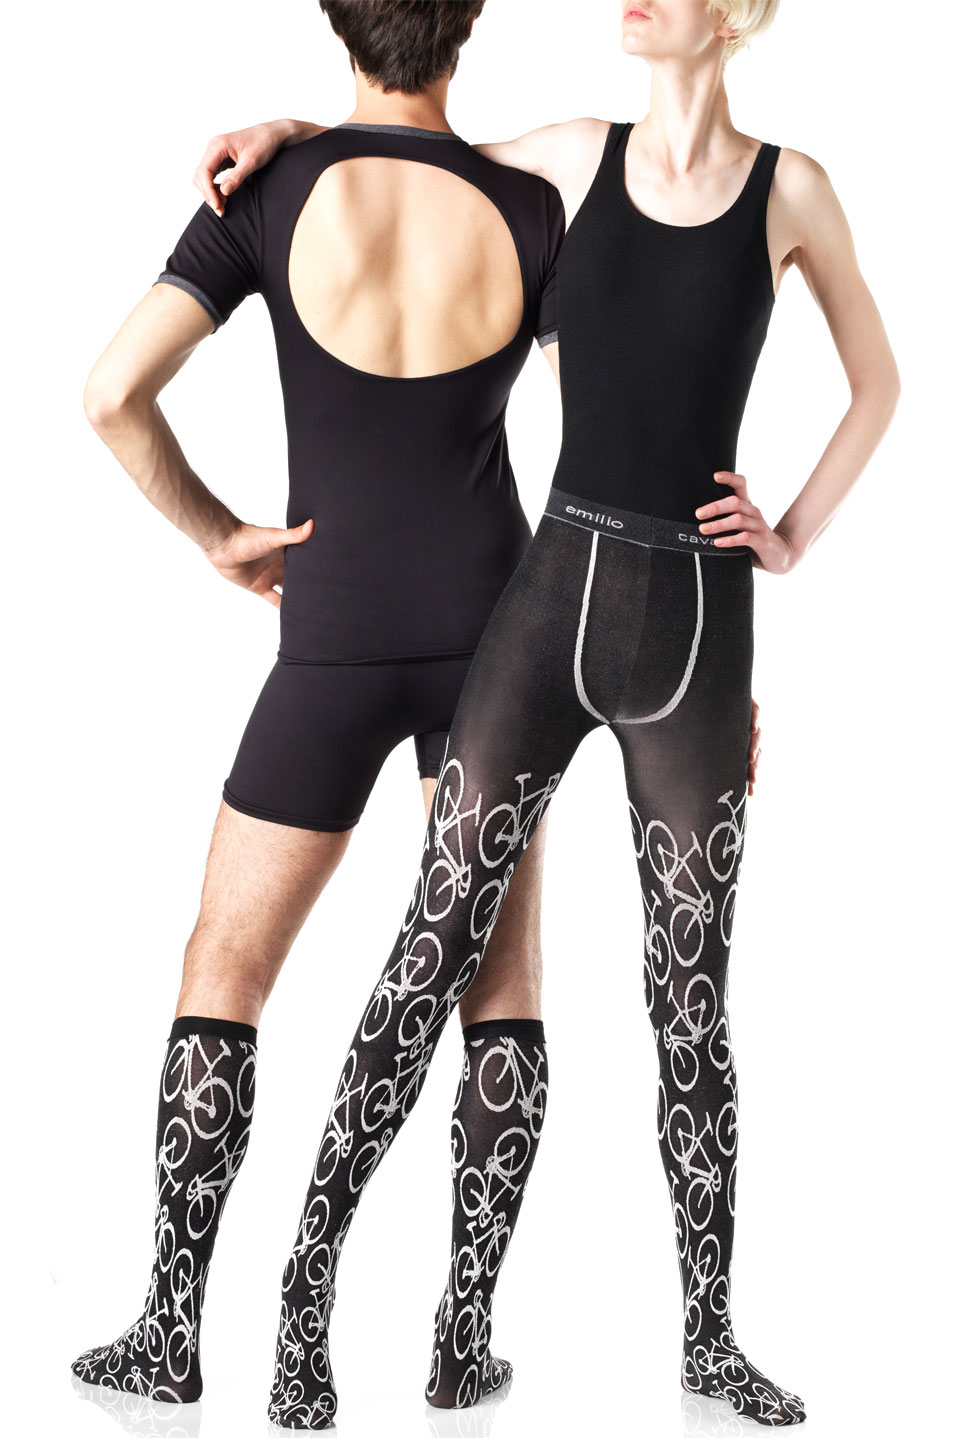 bike fashion - bike motif socks by emilio cavallini